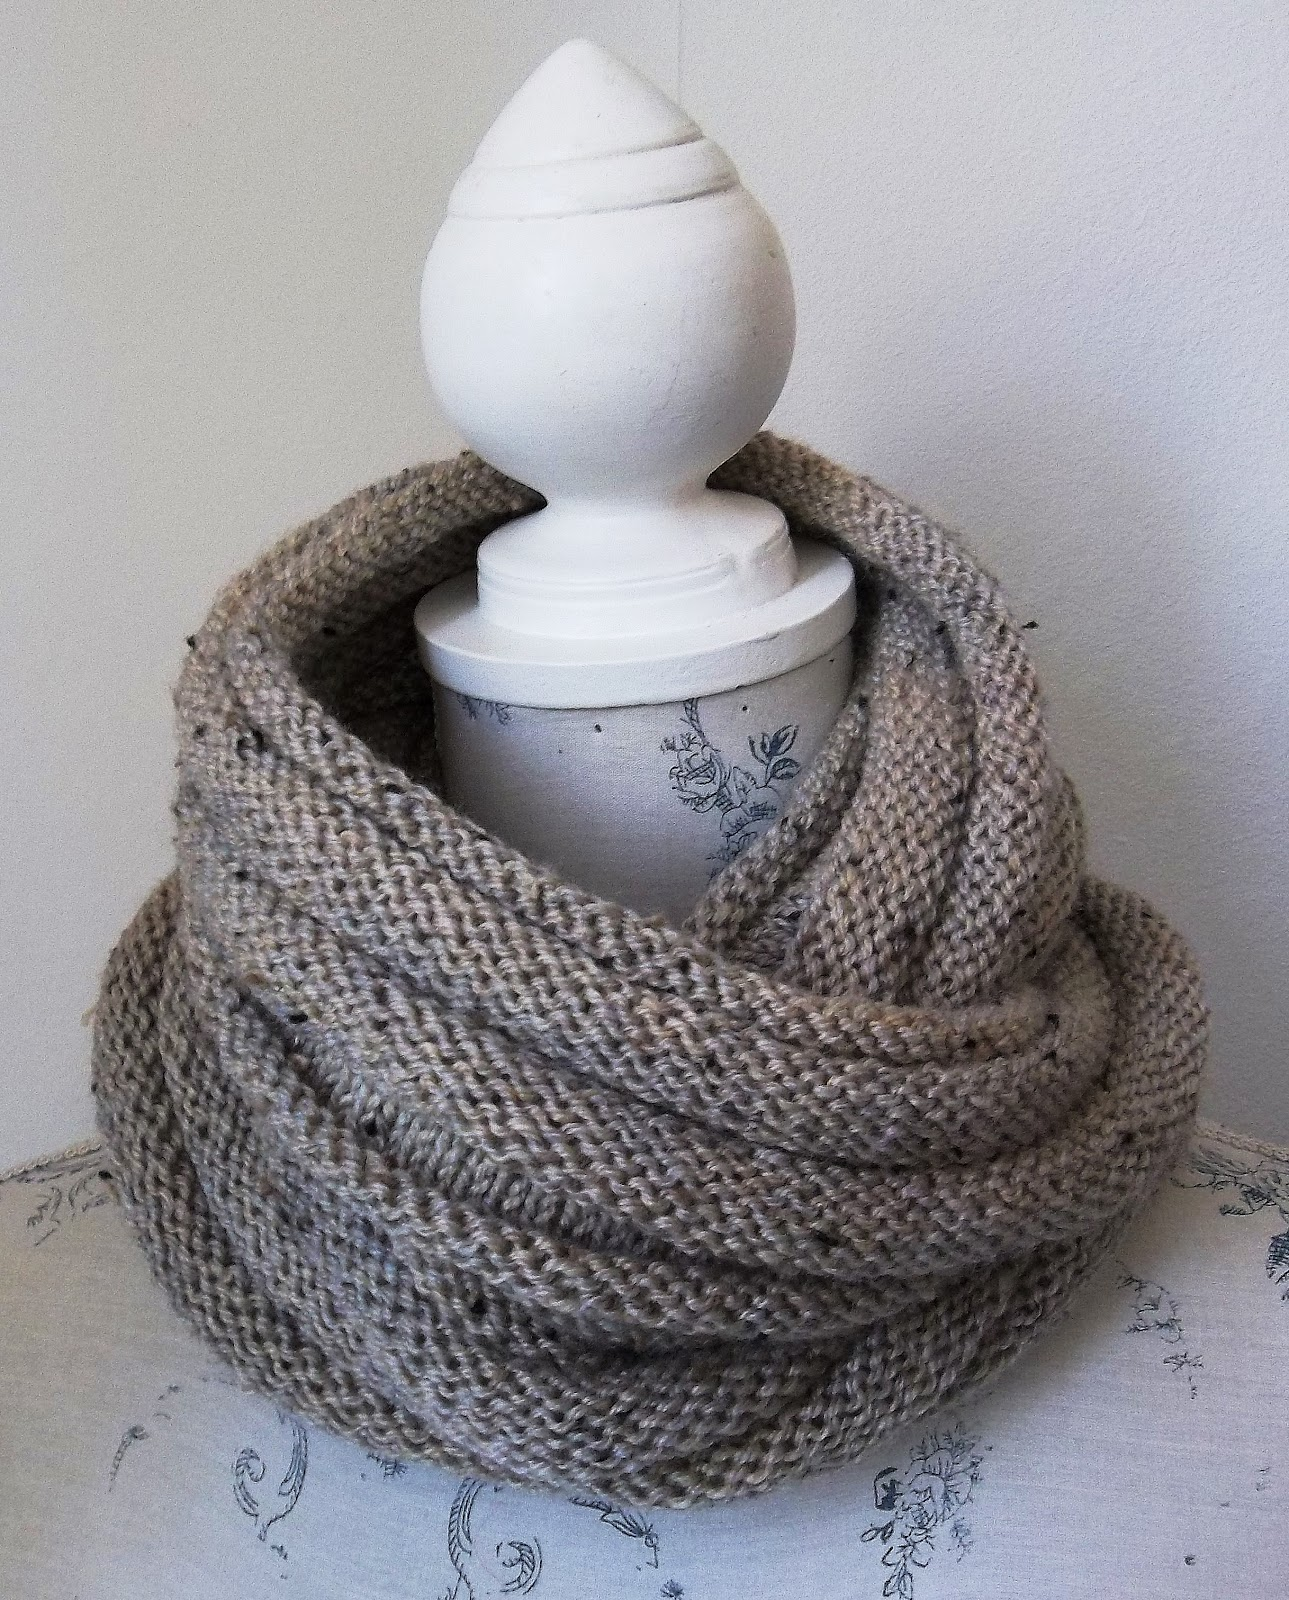 Knitting Pattern Cowl Scarf : HAND KNITTING PATTERNS. ARAN. COWLS, HATS, SCARVES AND NECK WARMERS